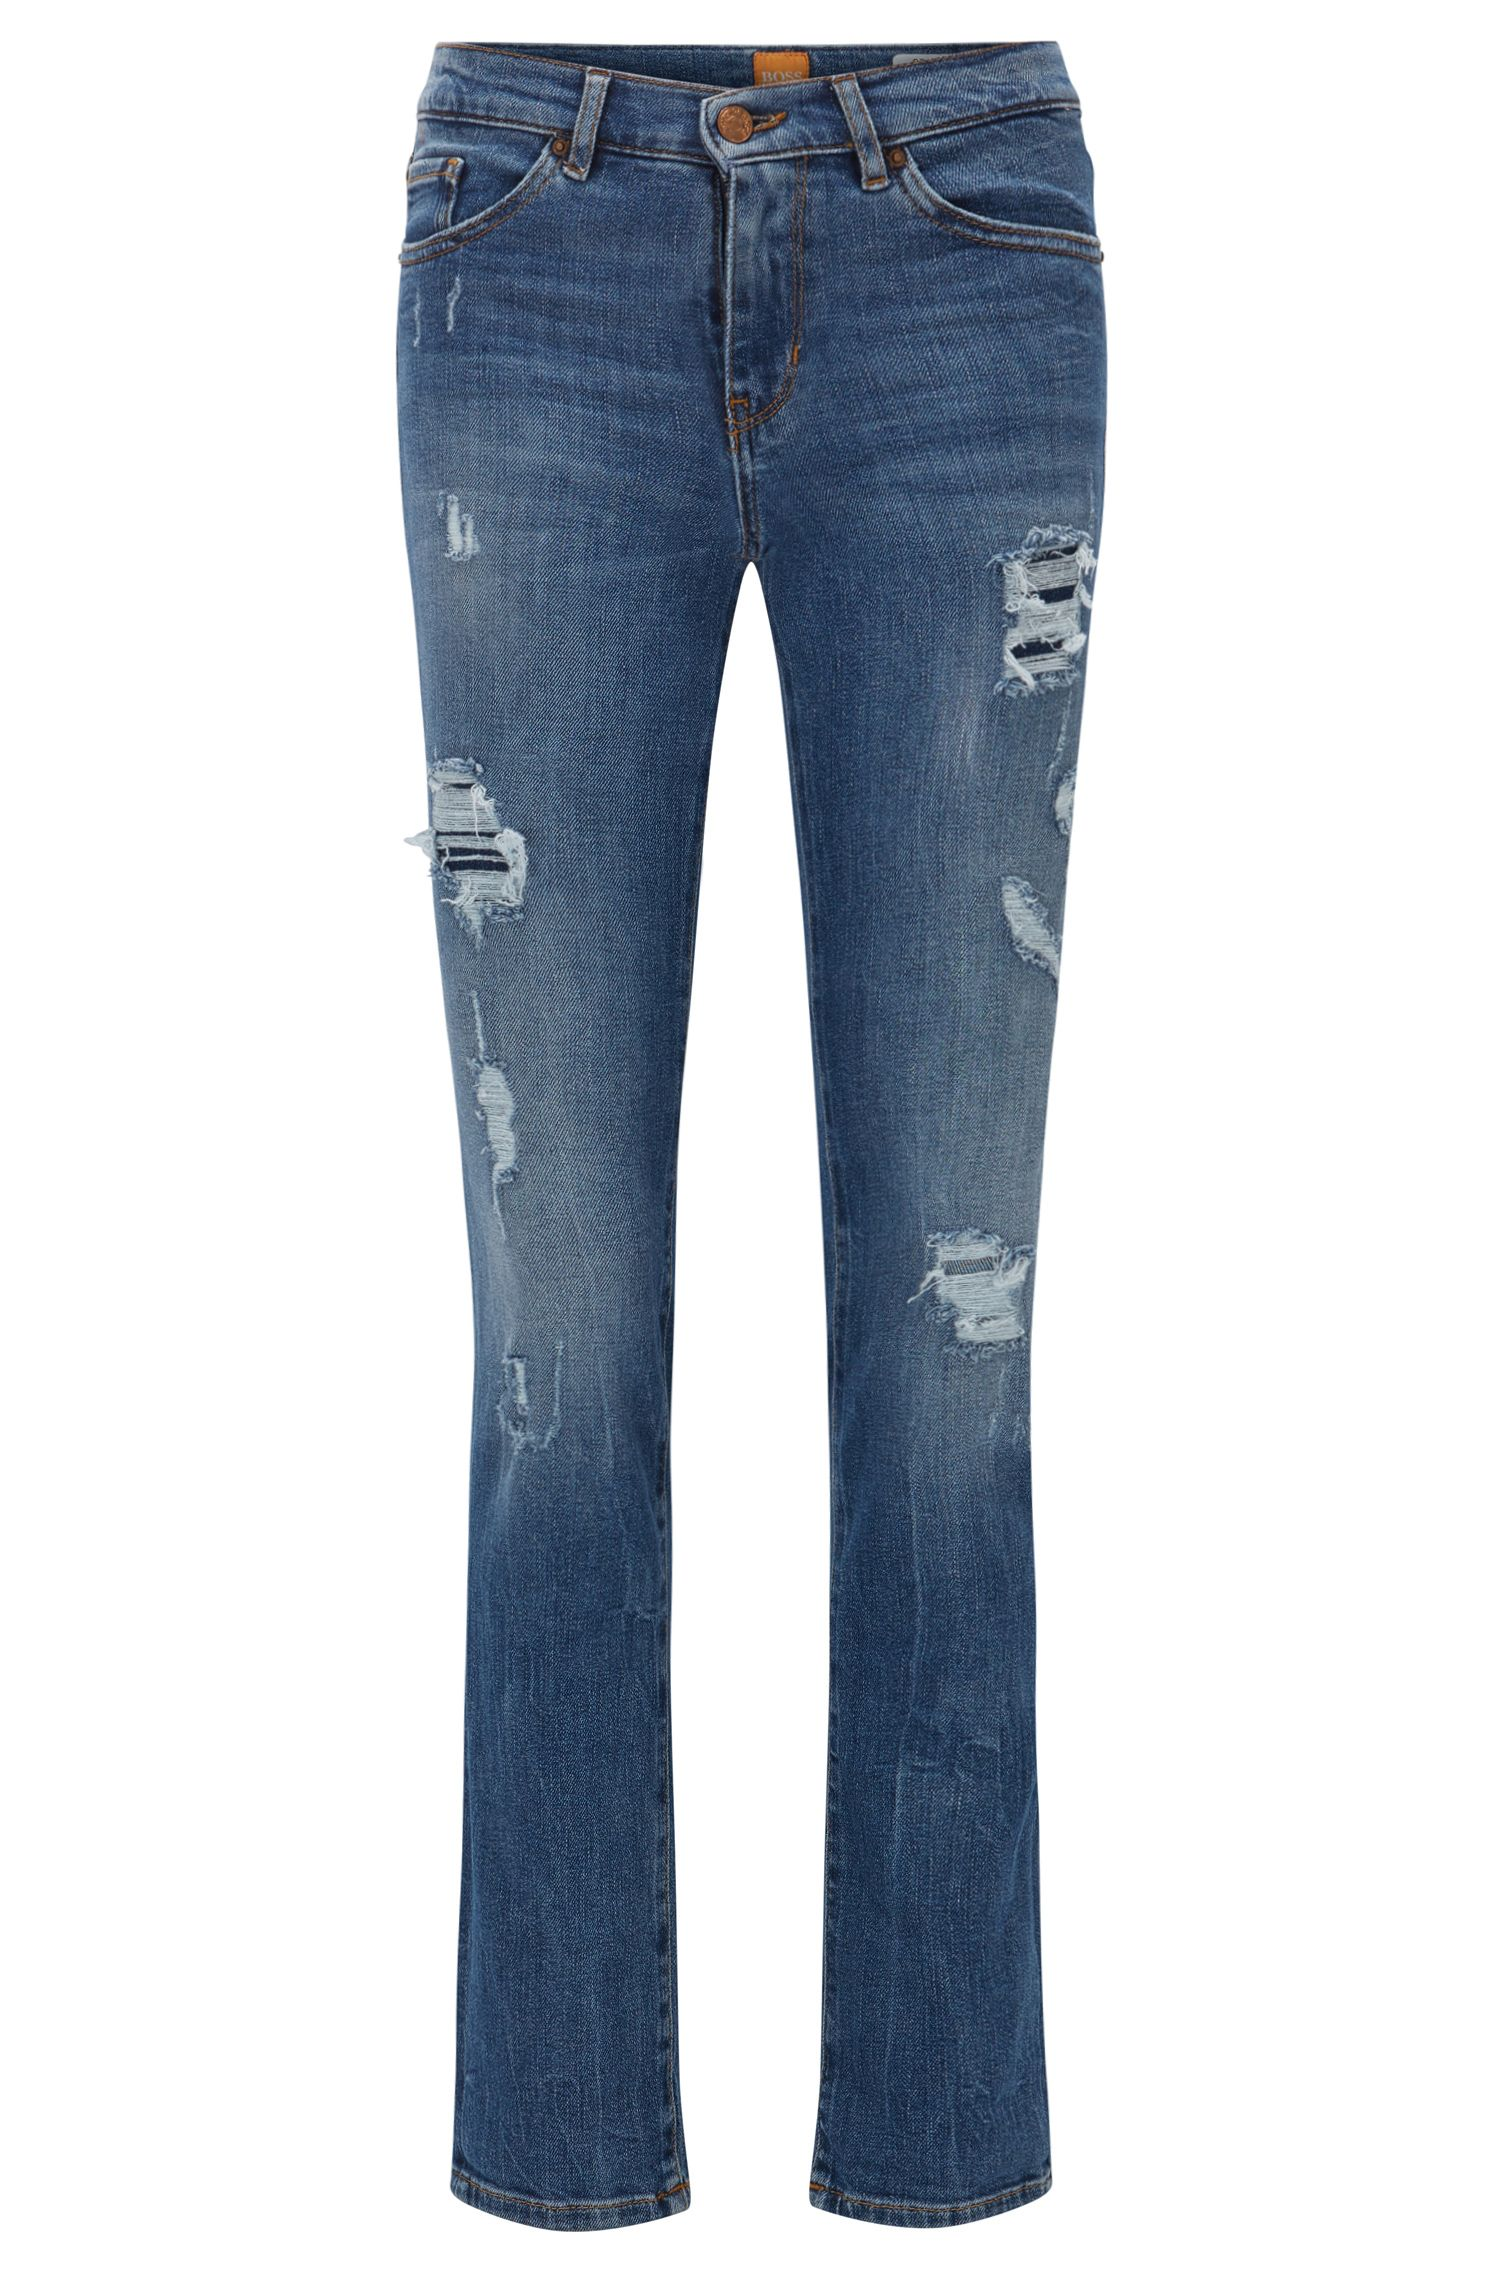 Jeans Slim Fit en denim stretch flammé confortable